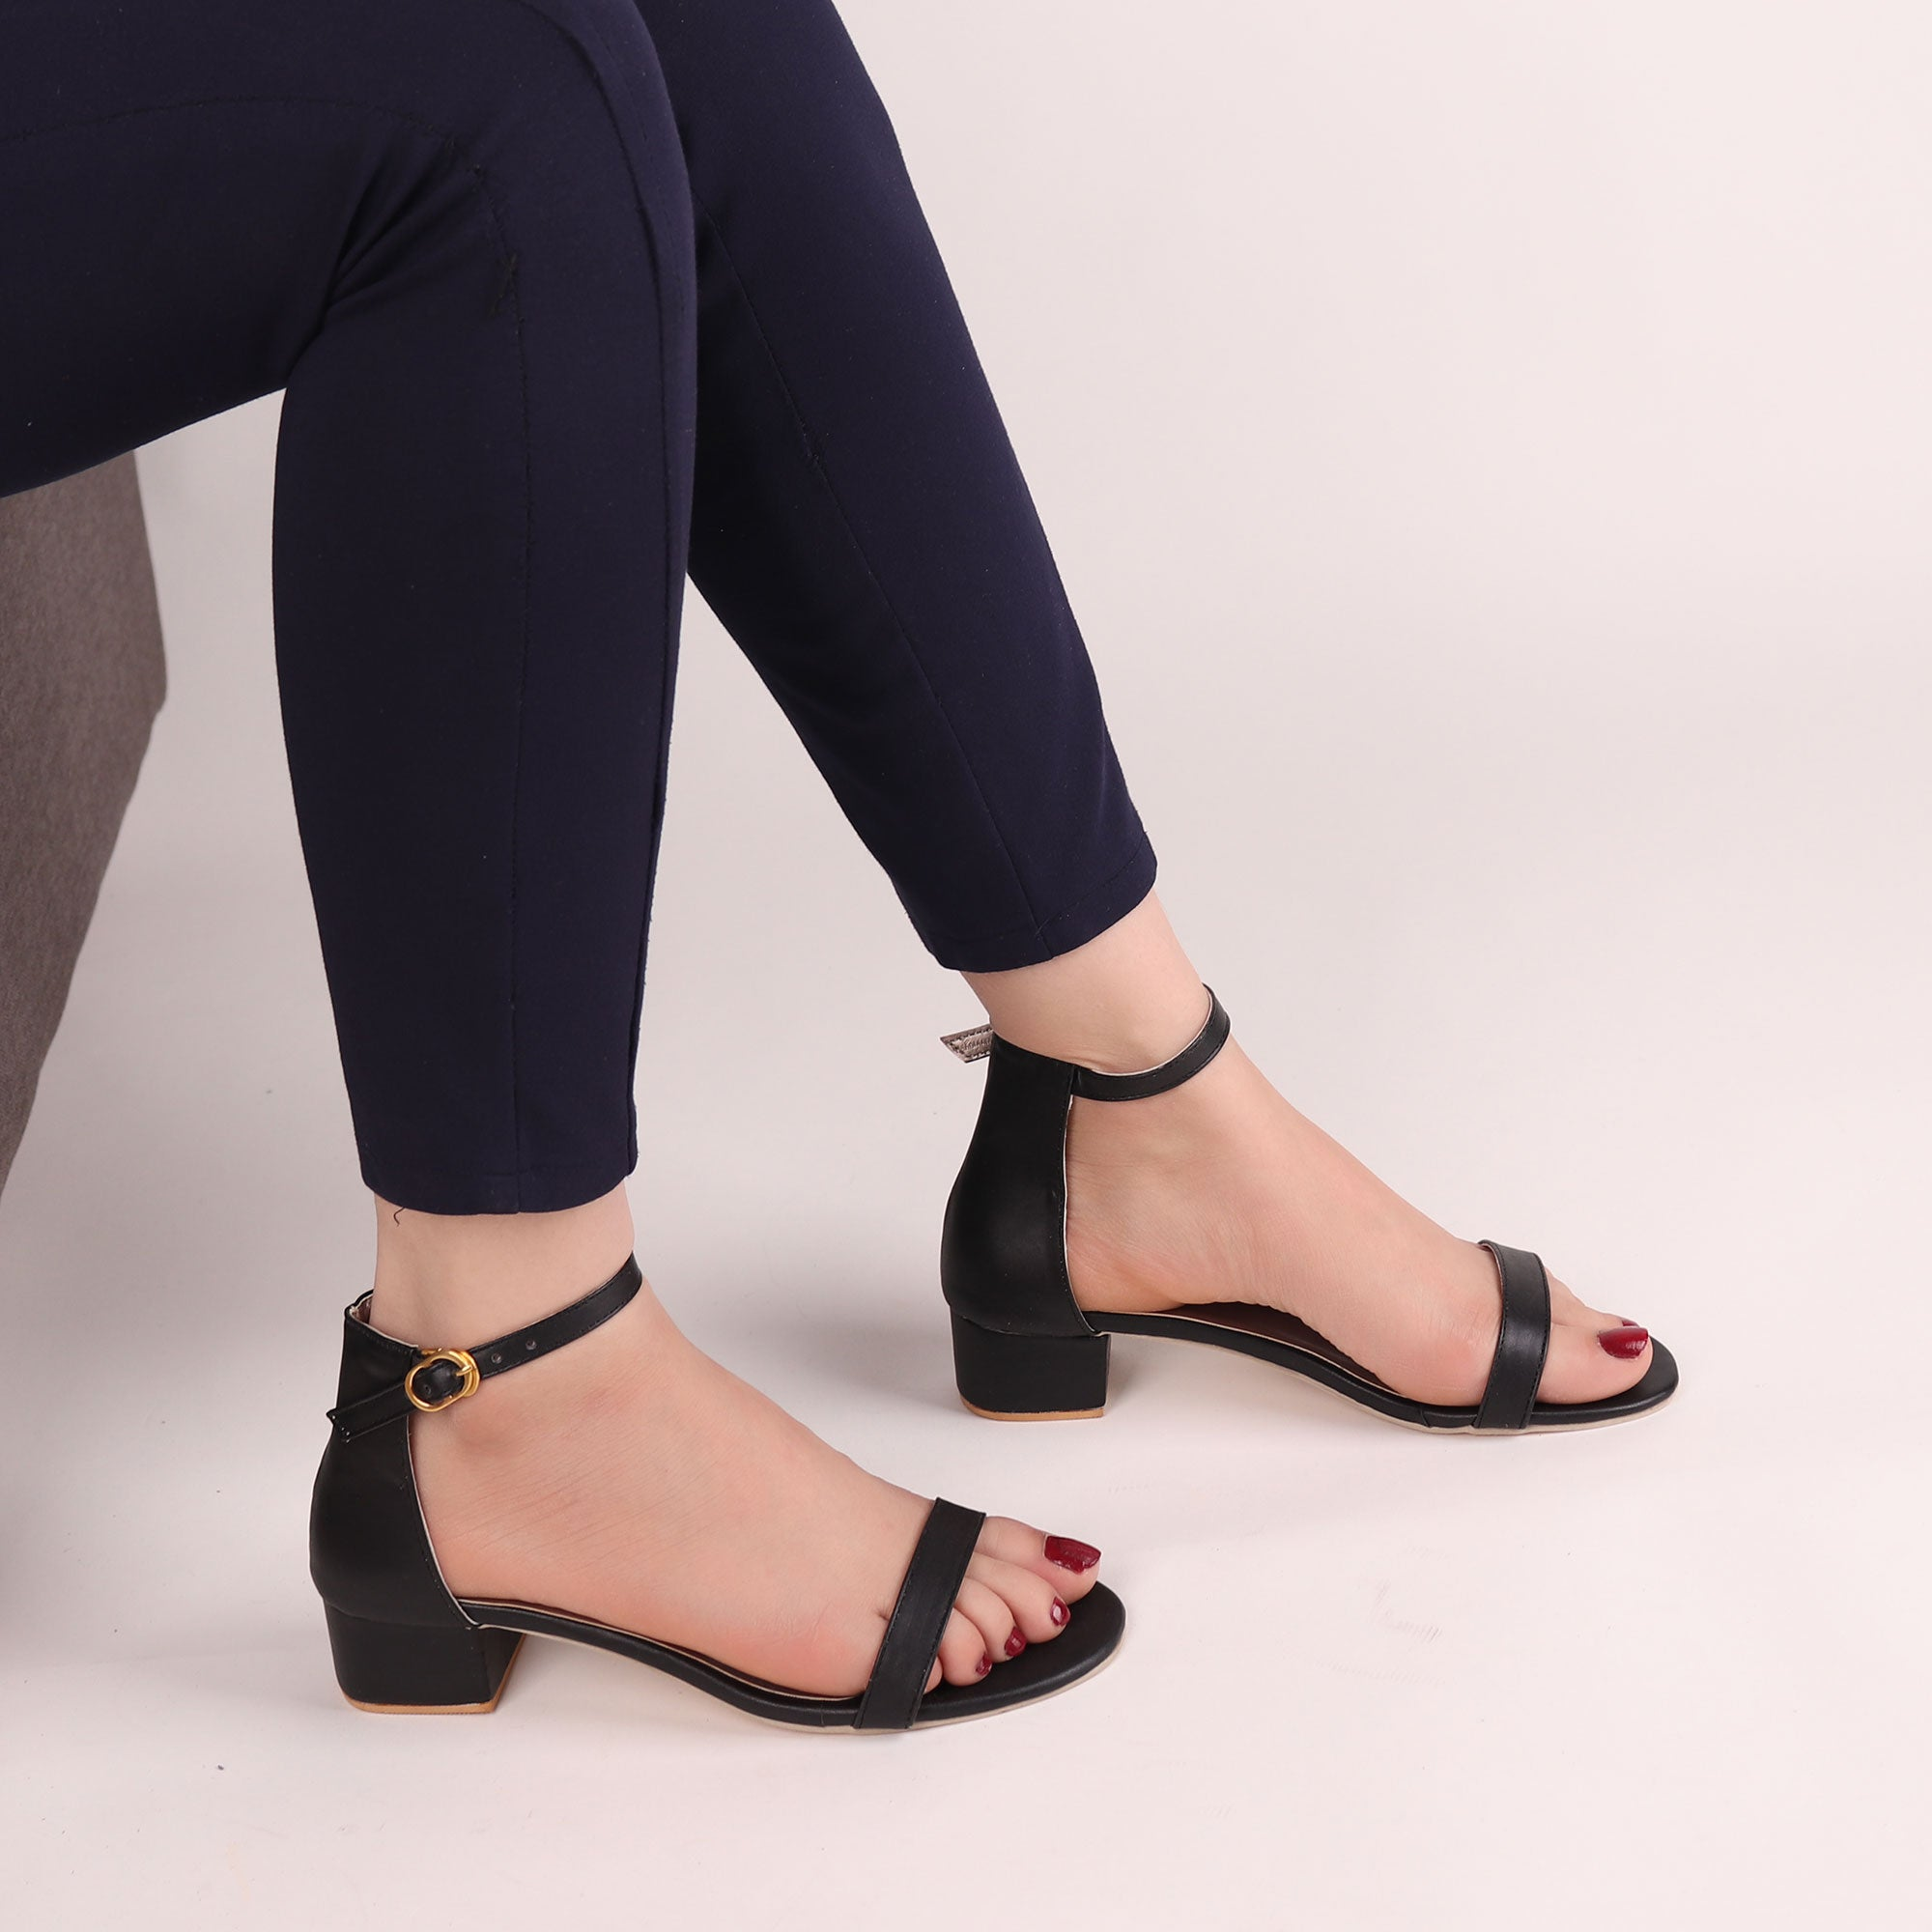 Foot Wear,It's Just the Right Block Heel in Black - Cippele Multi Store